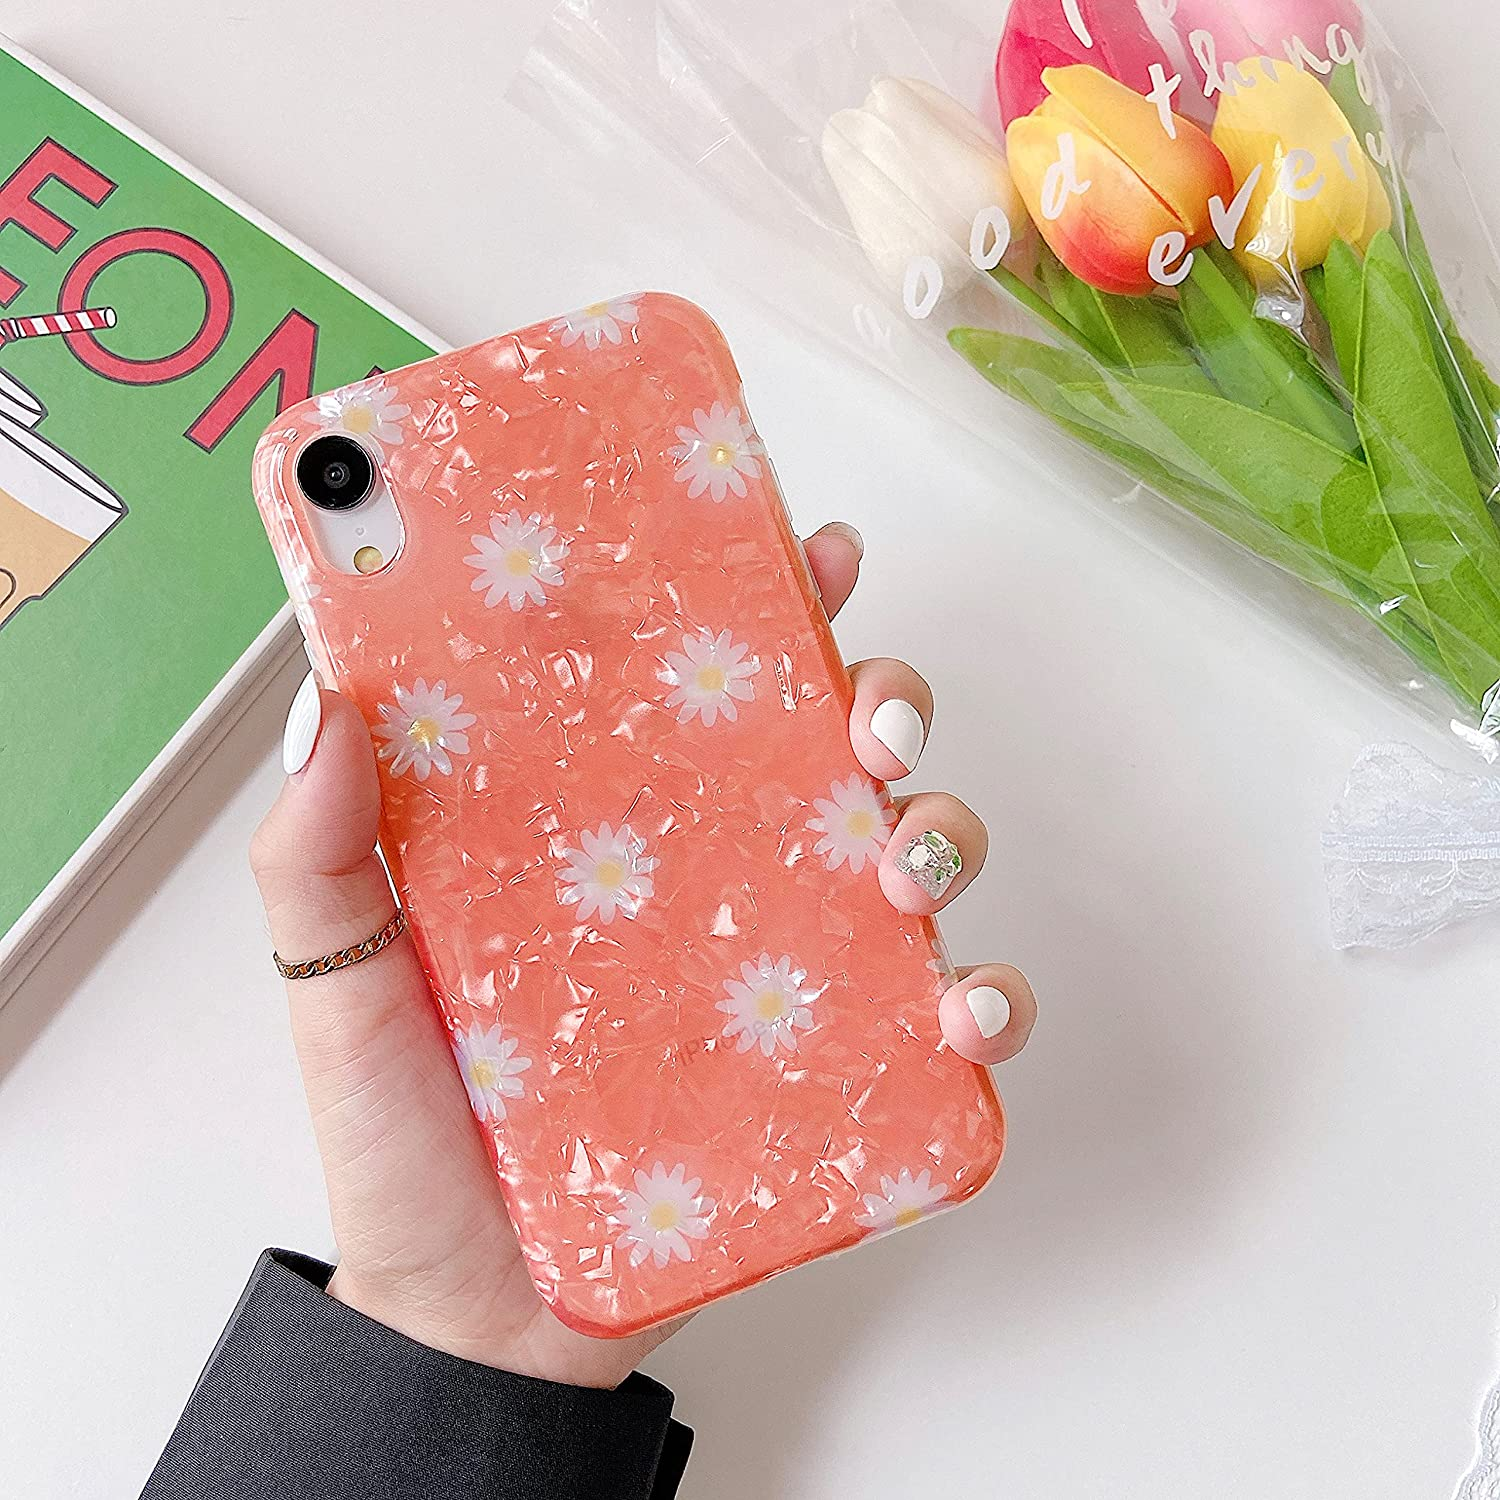 ZTOFERA iPhone XR Case Cute, Protective iPhone XR Case for Women Aesthetic Case with Daisy Design Marble for Girls Cool Lightweight Floral TPU Bumper Case for iPhone XR 6.1